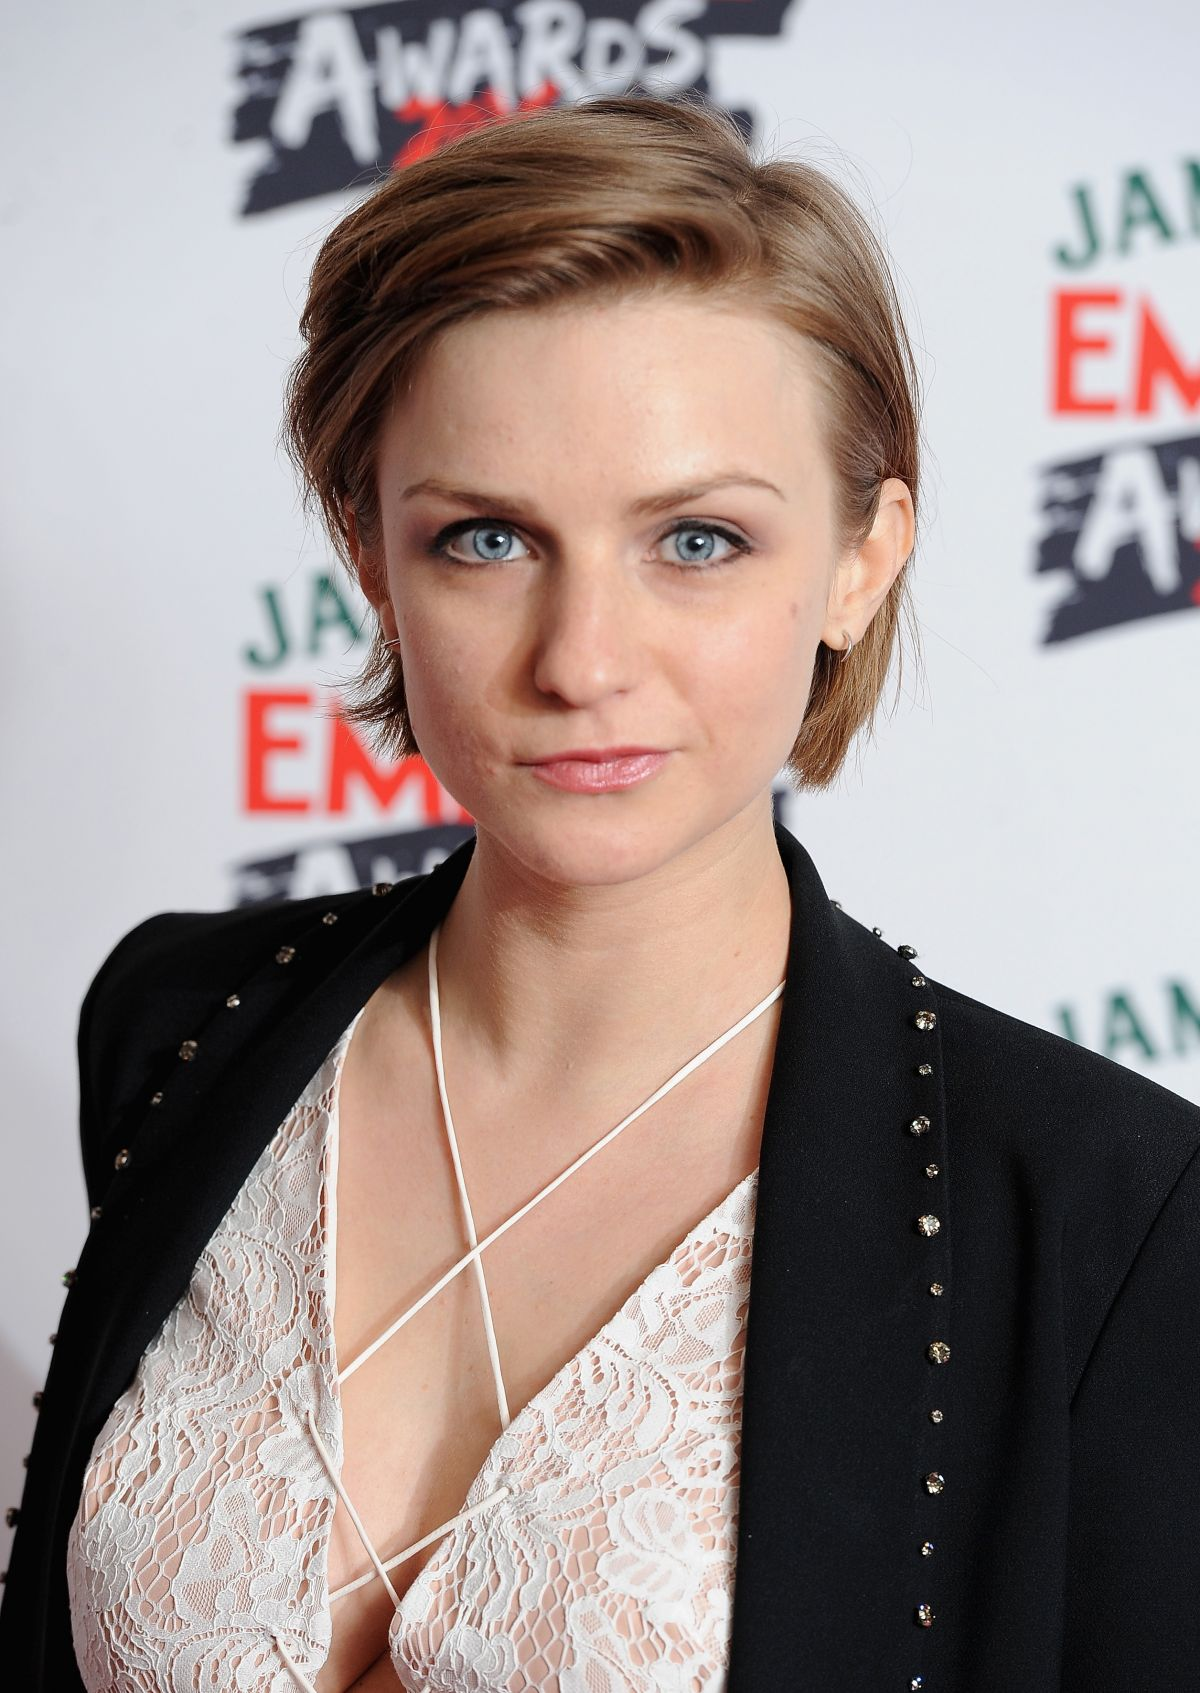 Hot Faye Marsay nudes (49 foto and video), Pussy, Paparazzi, Feet, lingerie 2018